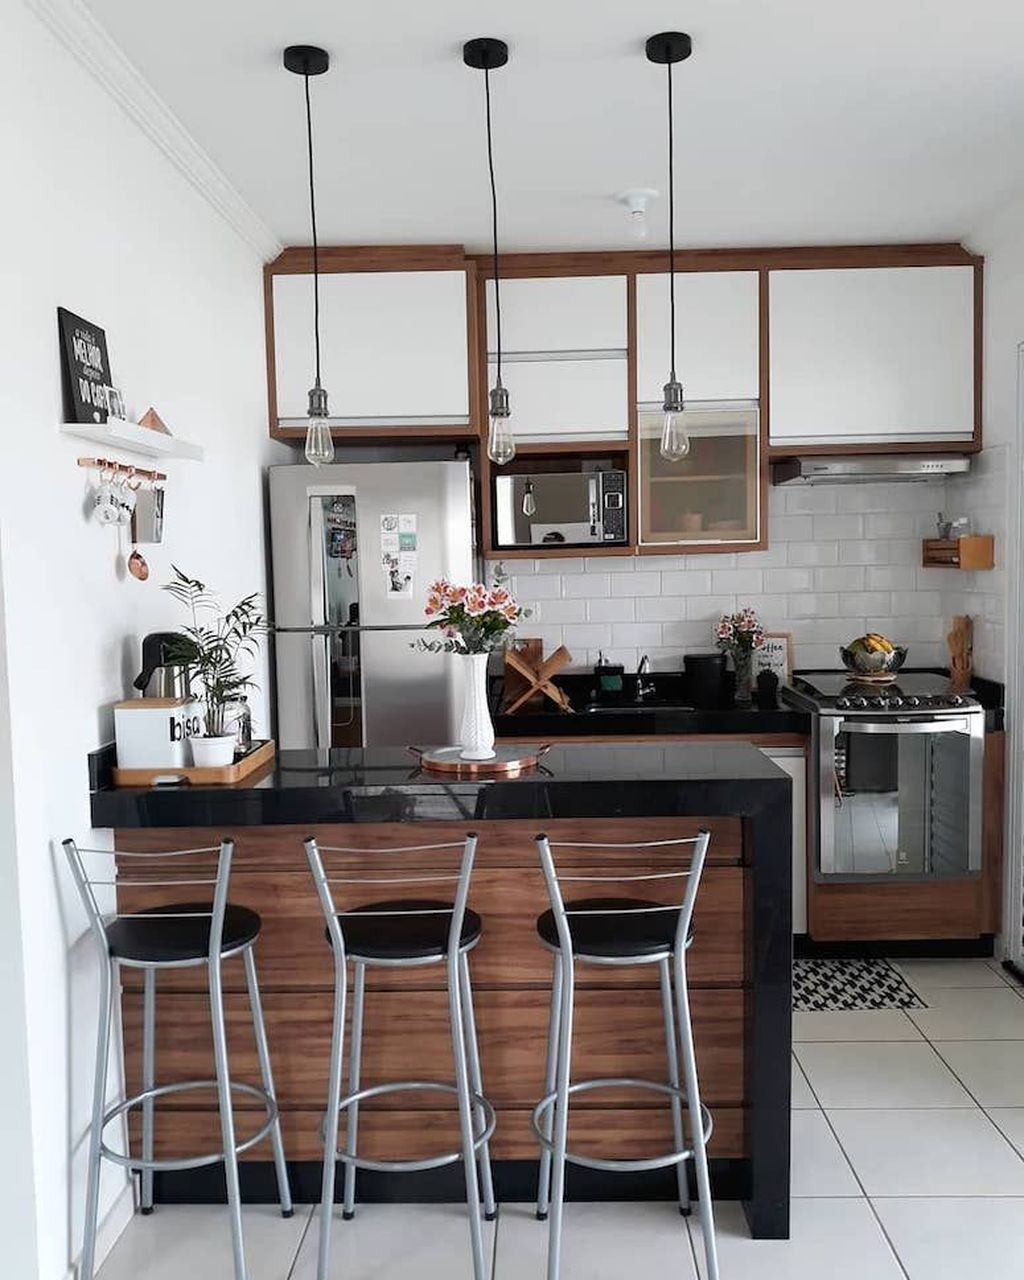 Elegant Minimalist Kitchen Design Ideas For Small Space To Try 34